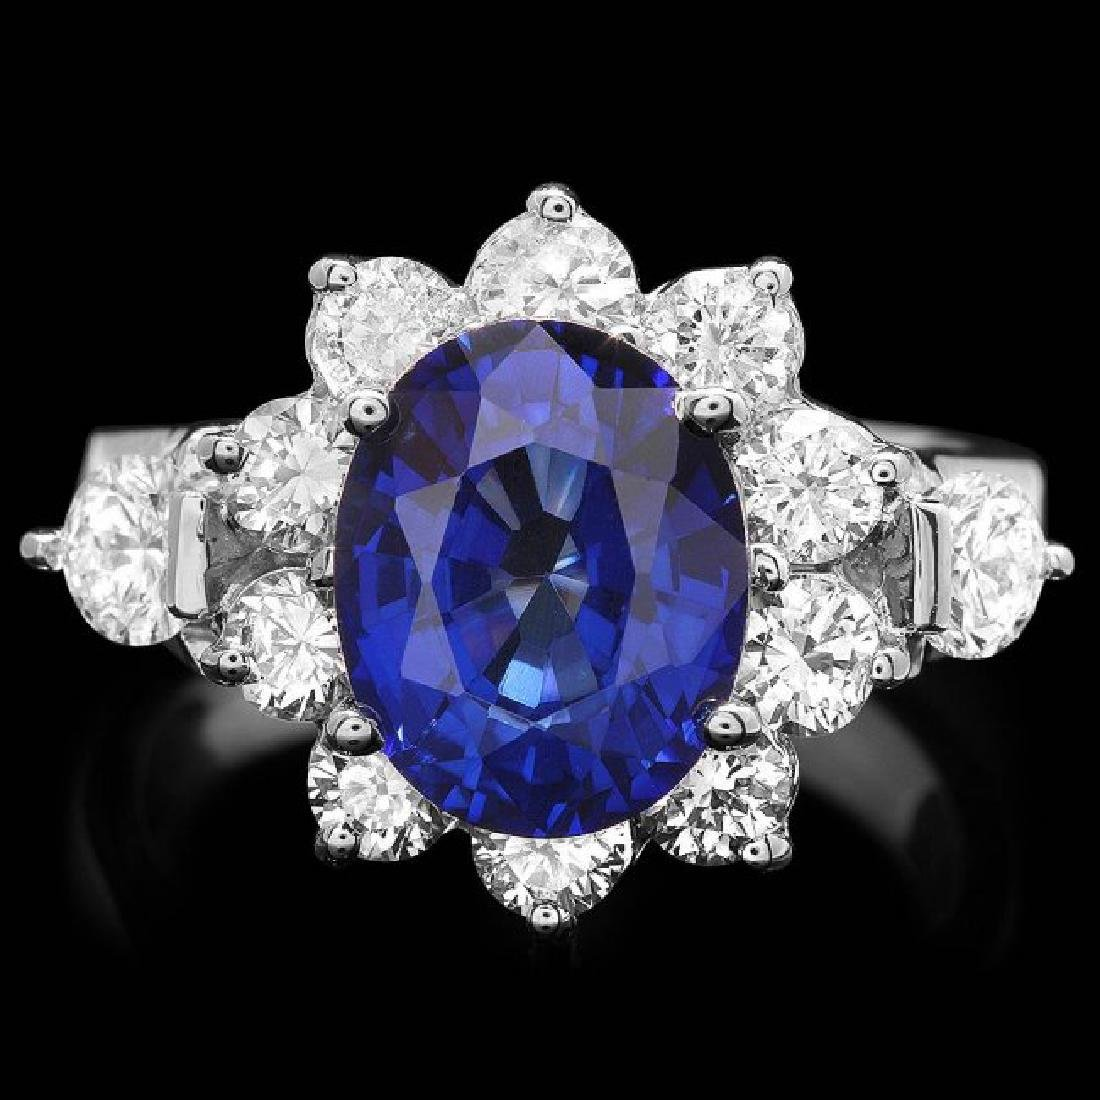 14k Gold 4.00ct Sapphire 1.55ct Diamond Ring